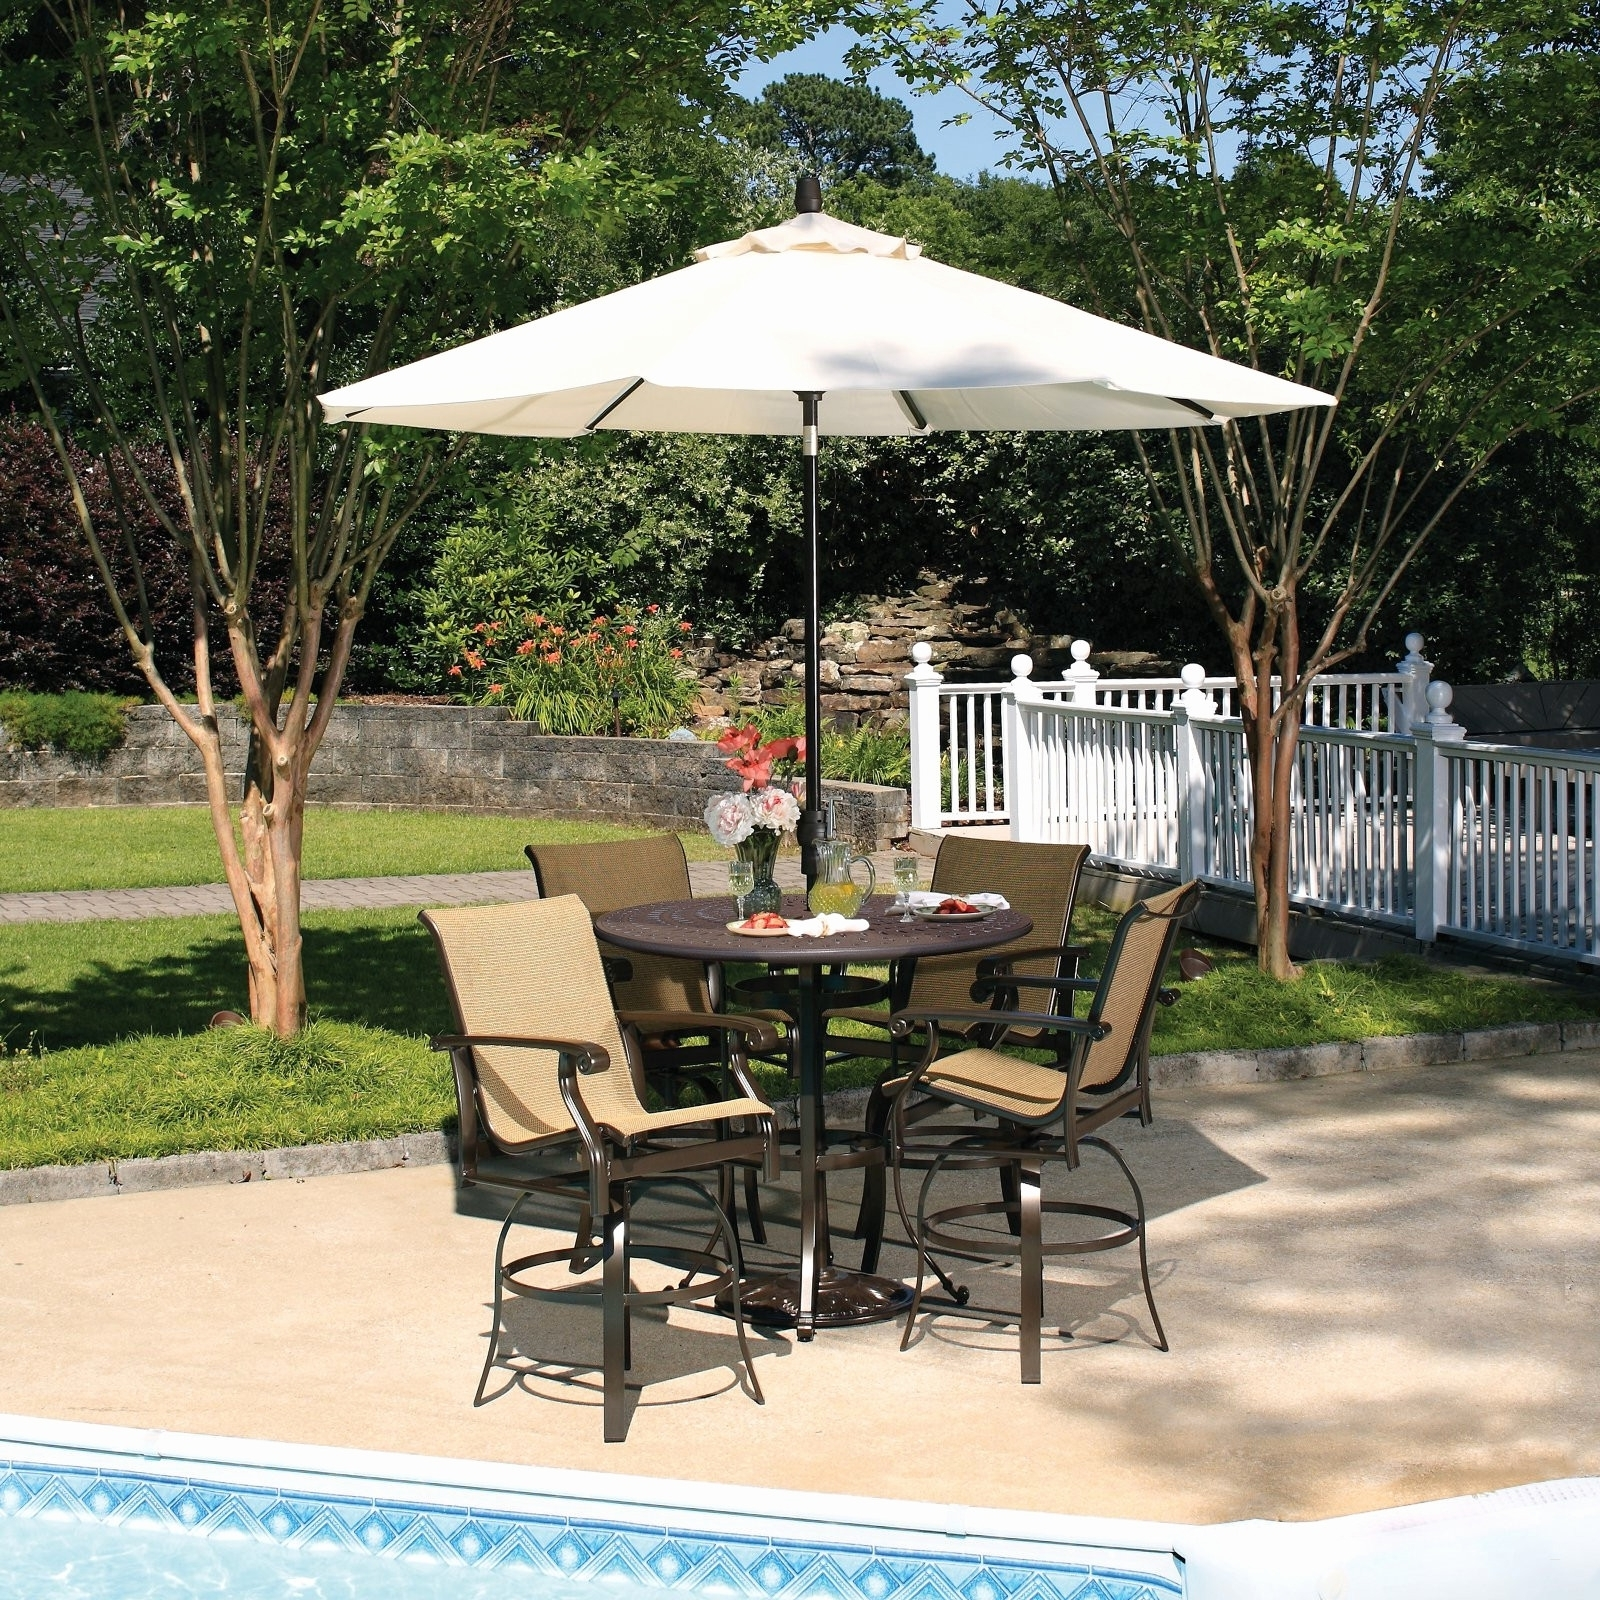 Sears Outdoor Furniture Best Of 30 Elegant Sears Patio Umbrella With Regard To Most Current Sears Patio Umbrellas (View 6 of 20)